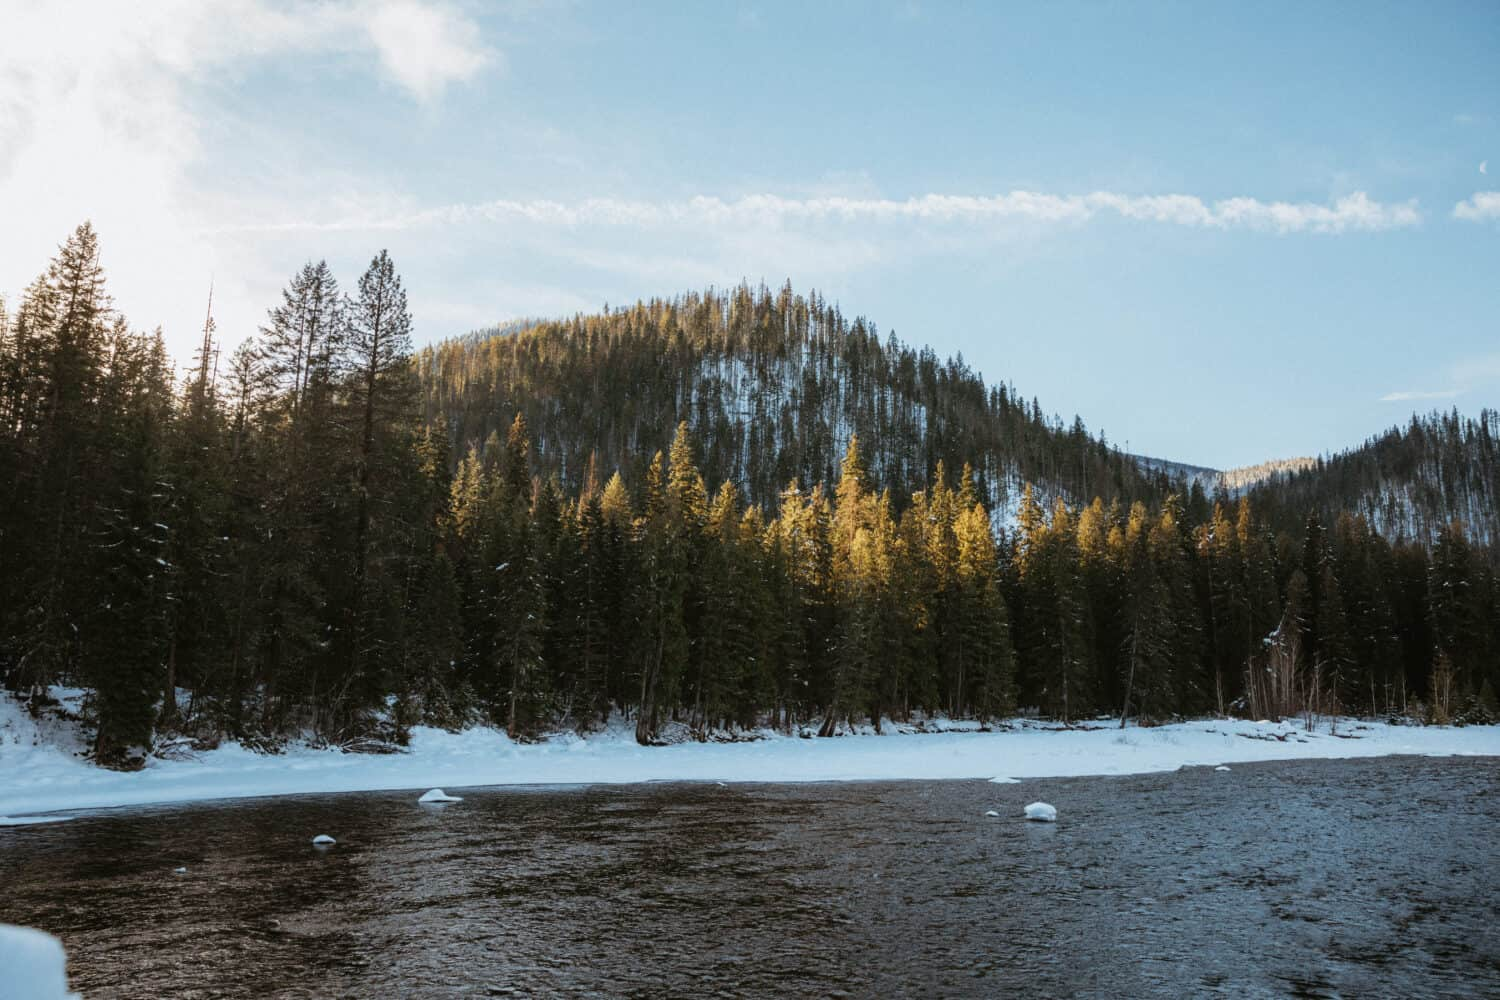 View of Lochsa River in Central Idaho